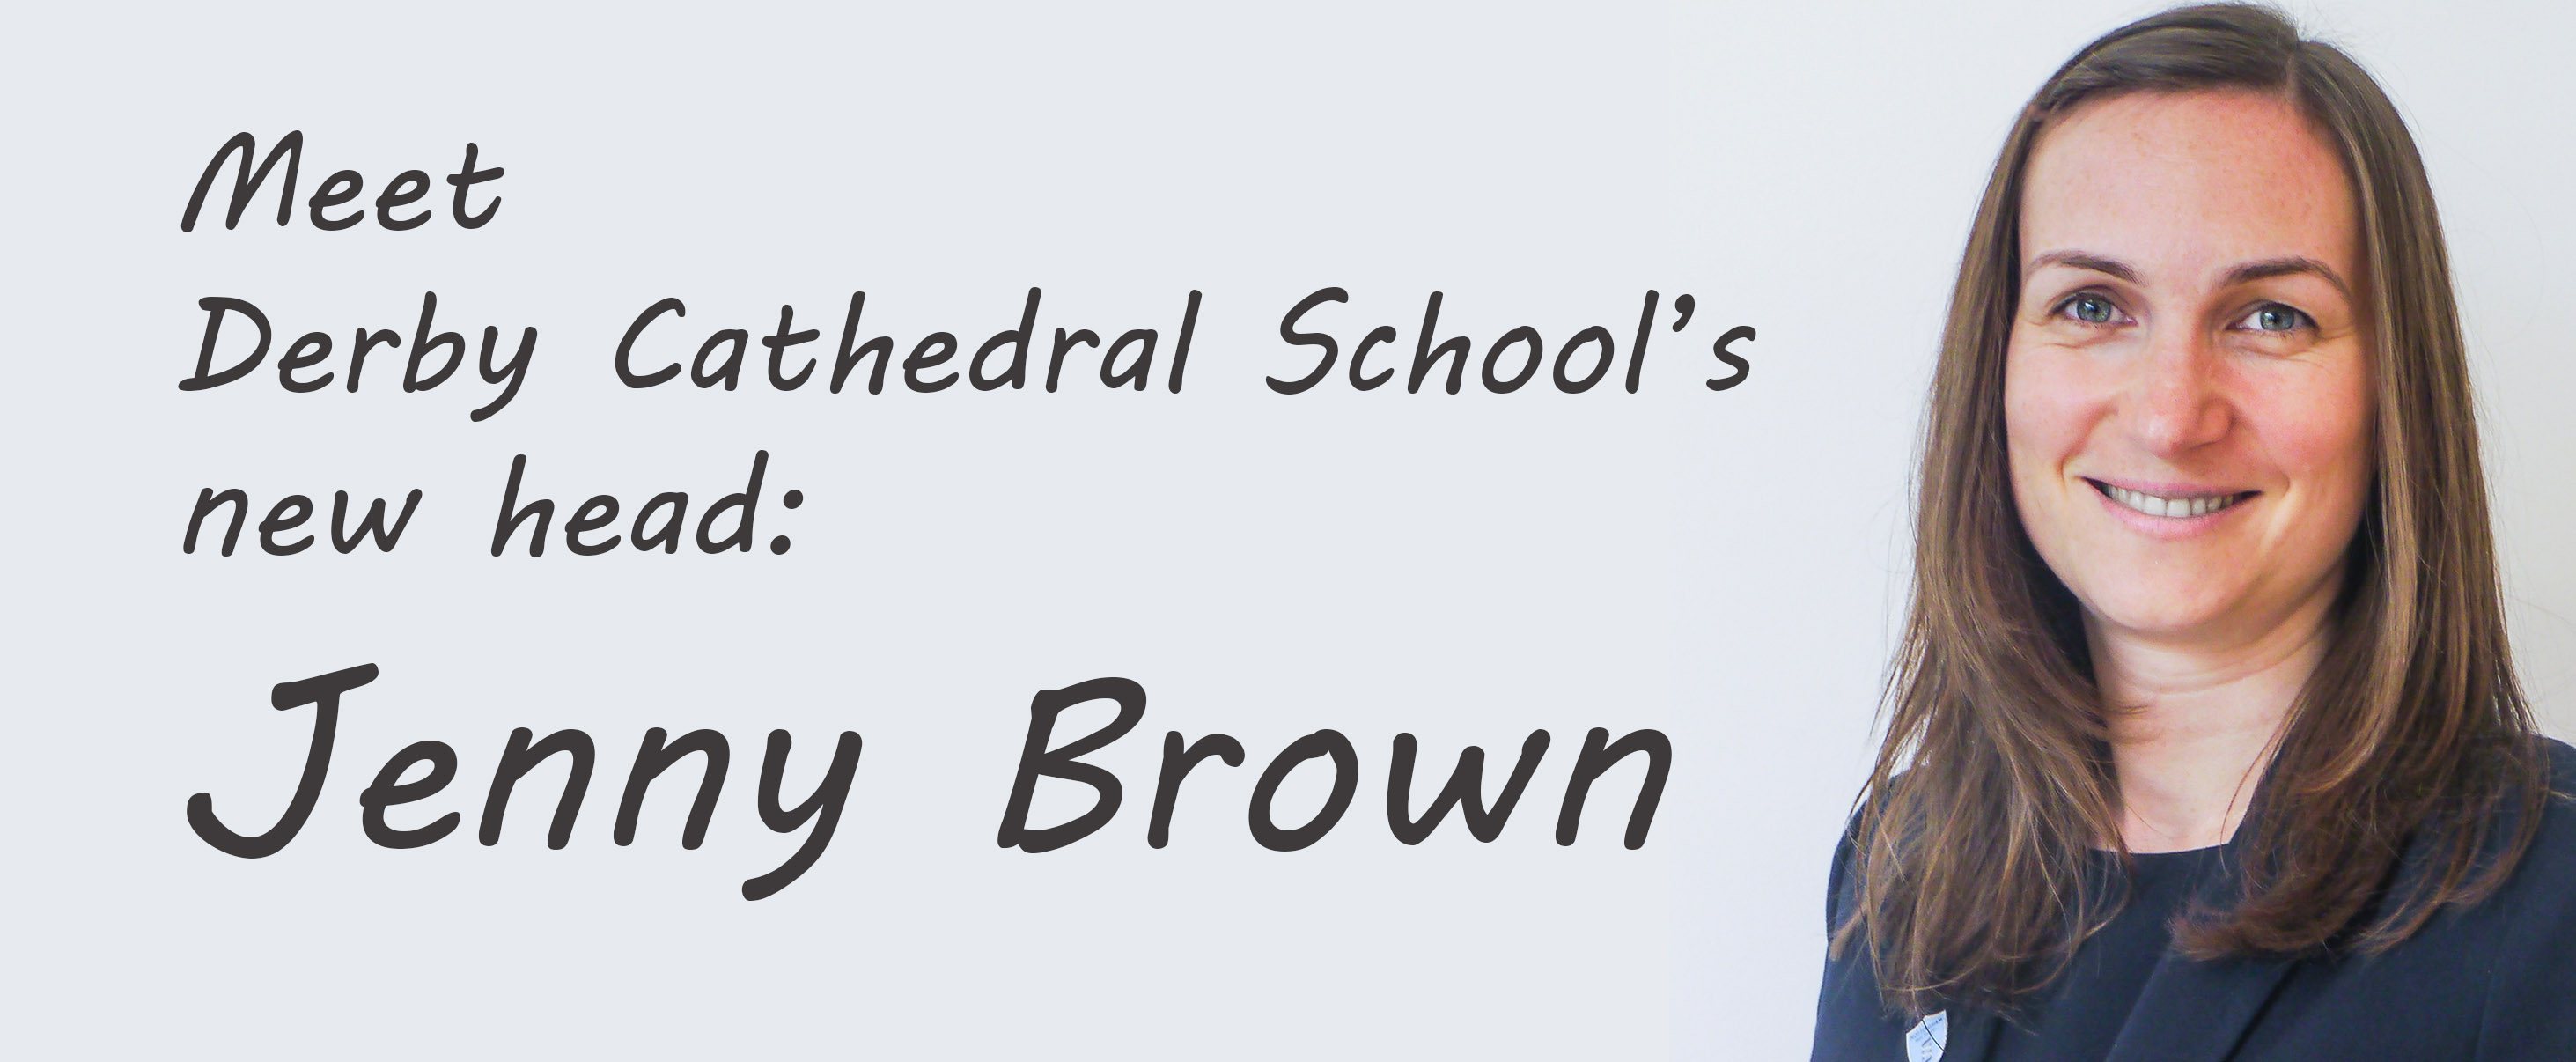 jenny brown header